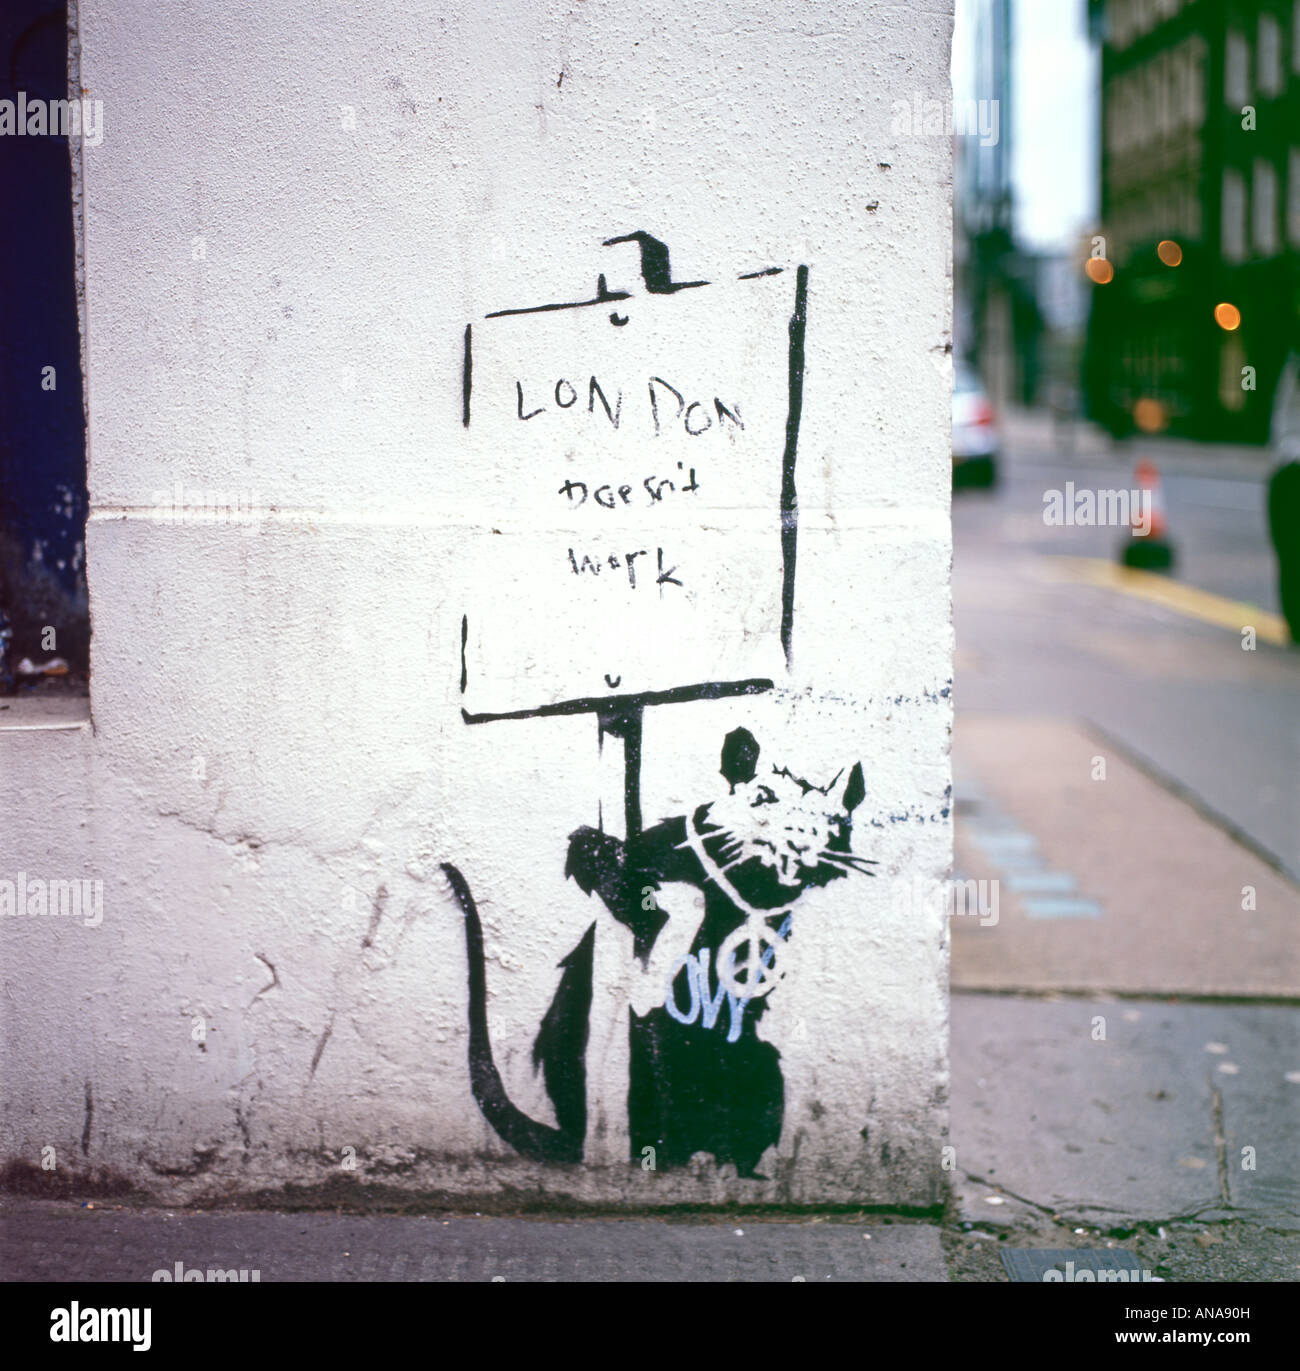 Banksy rat stencil  'London doesn't work' in the City of London, England UK  KATHY DEWITT - Stock Image